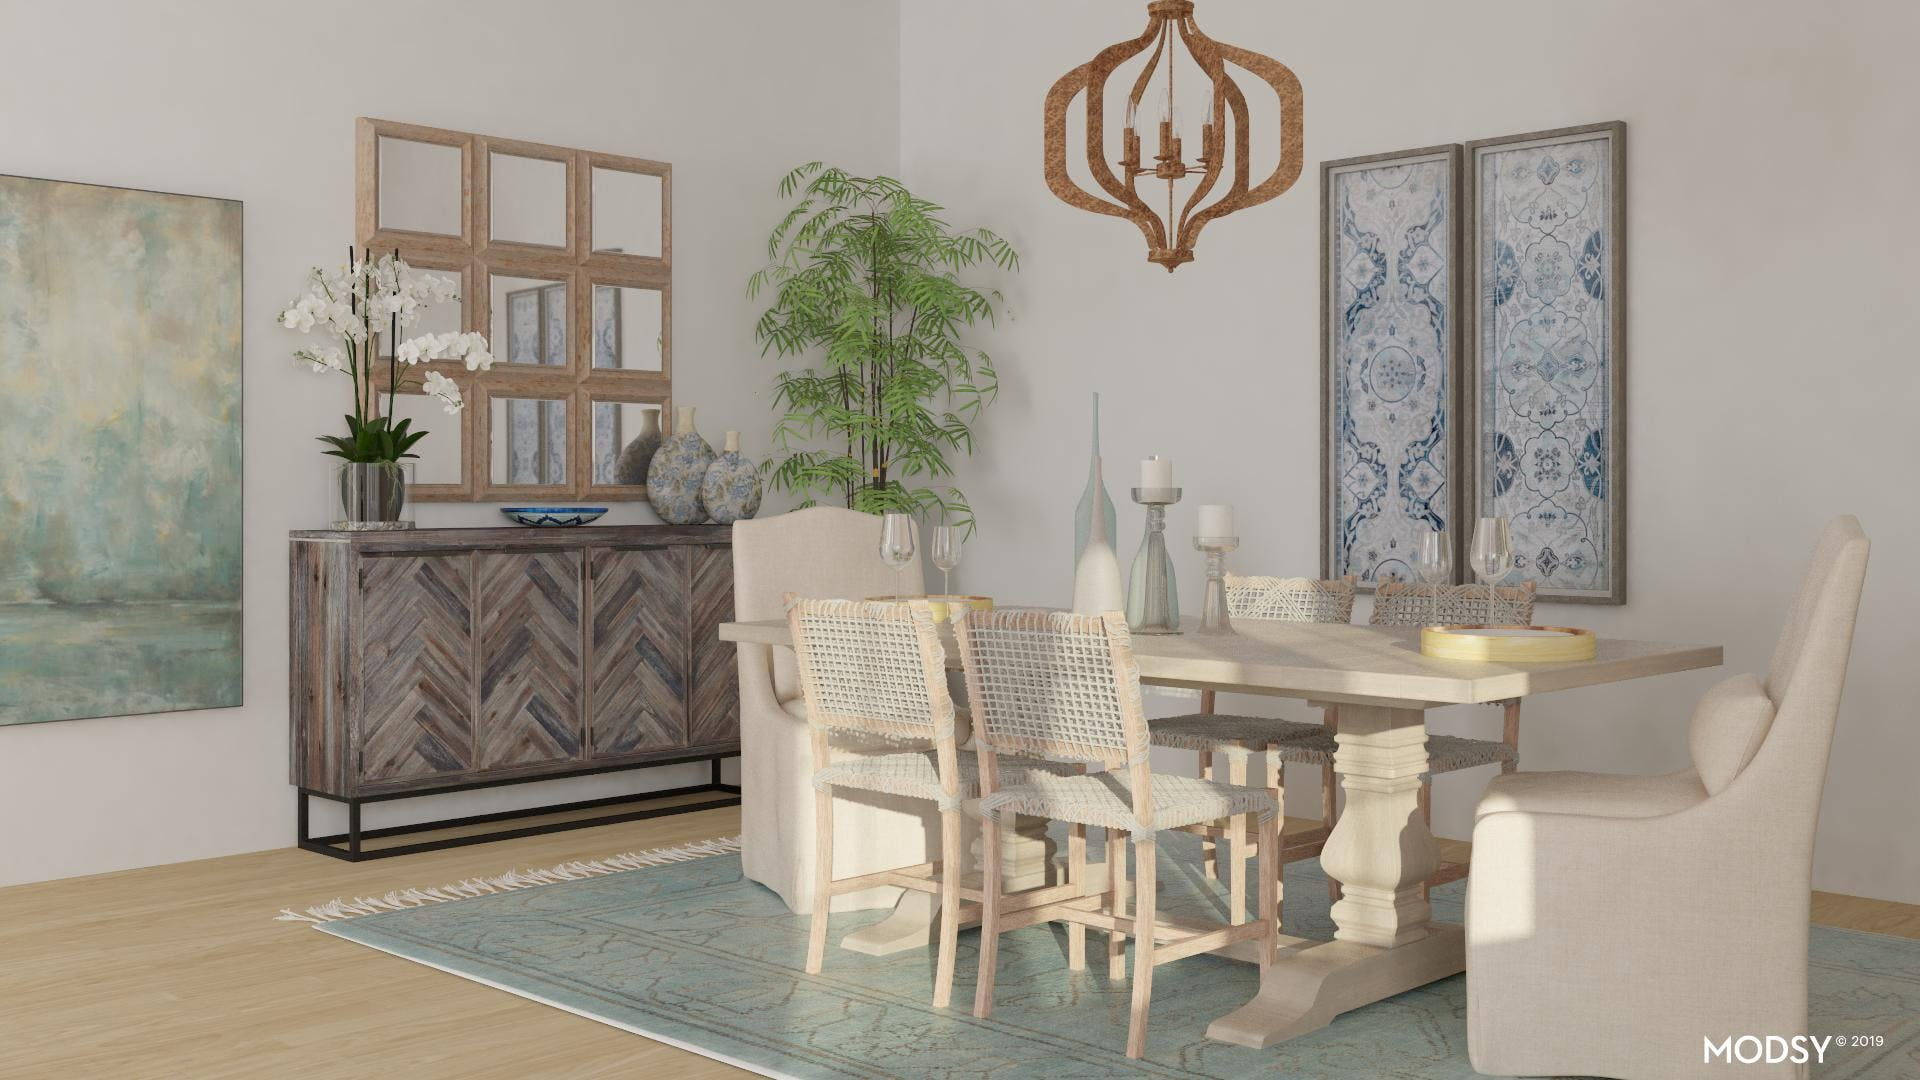 Pastel Blues and Greens for a Soothing Dining Room